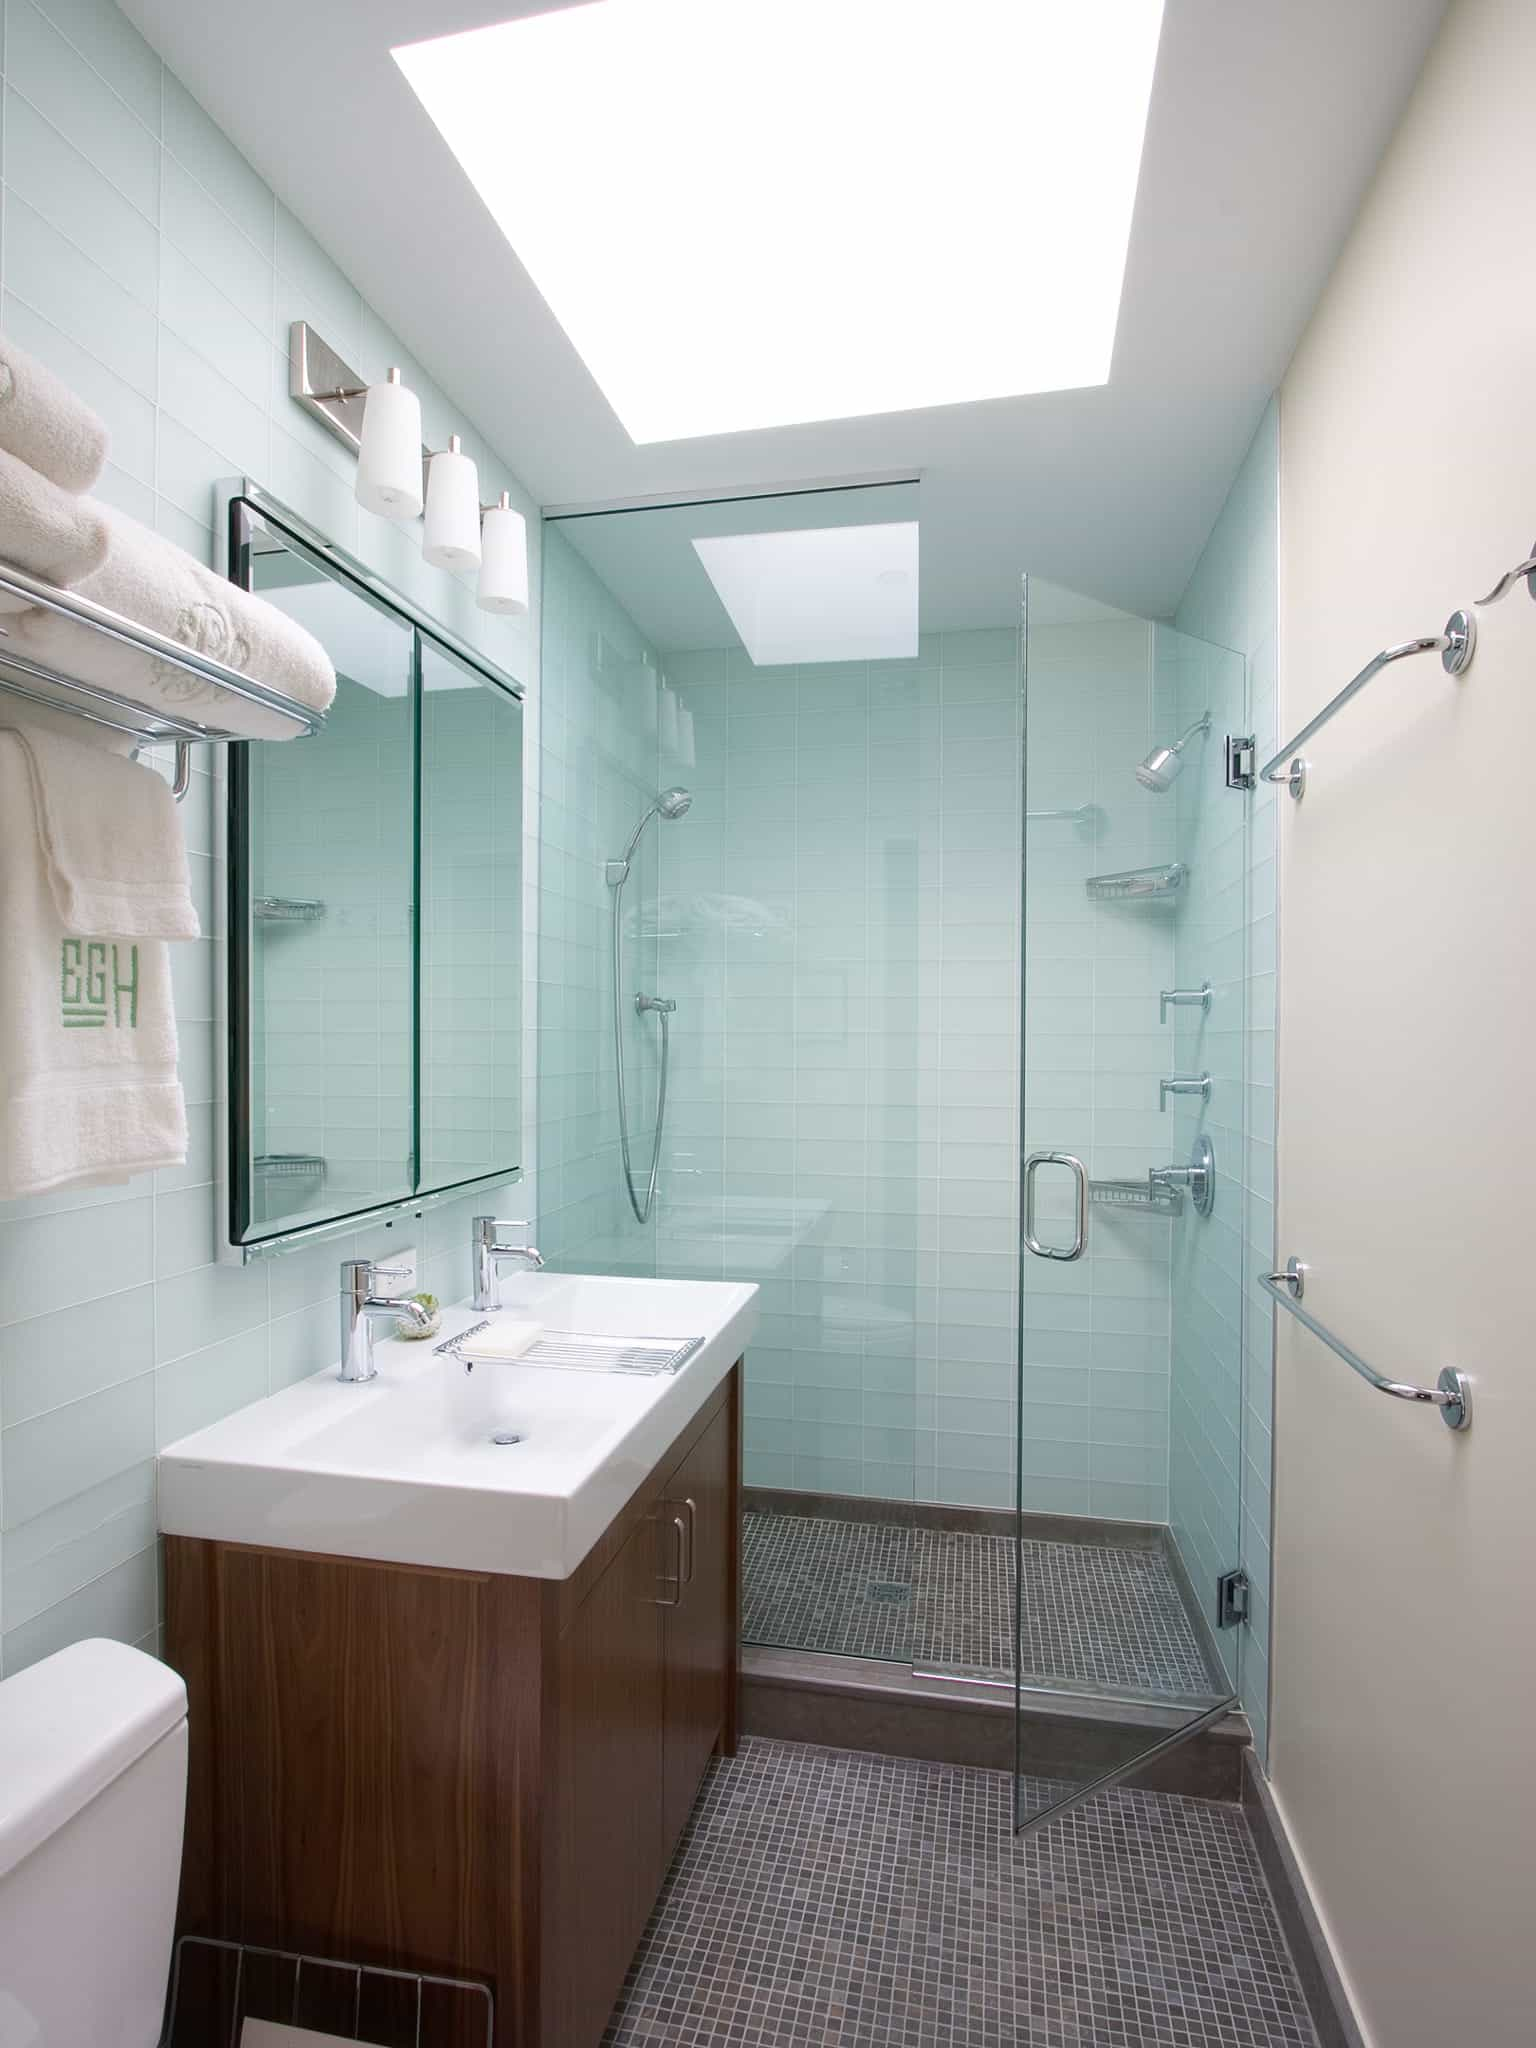 The Best Bathroom Shower Combo #23840 | Bathroom Ideas